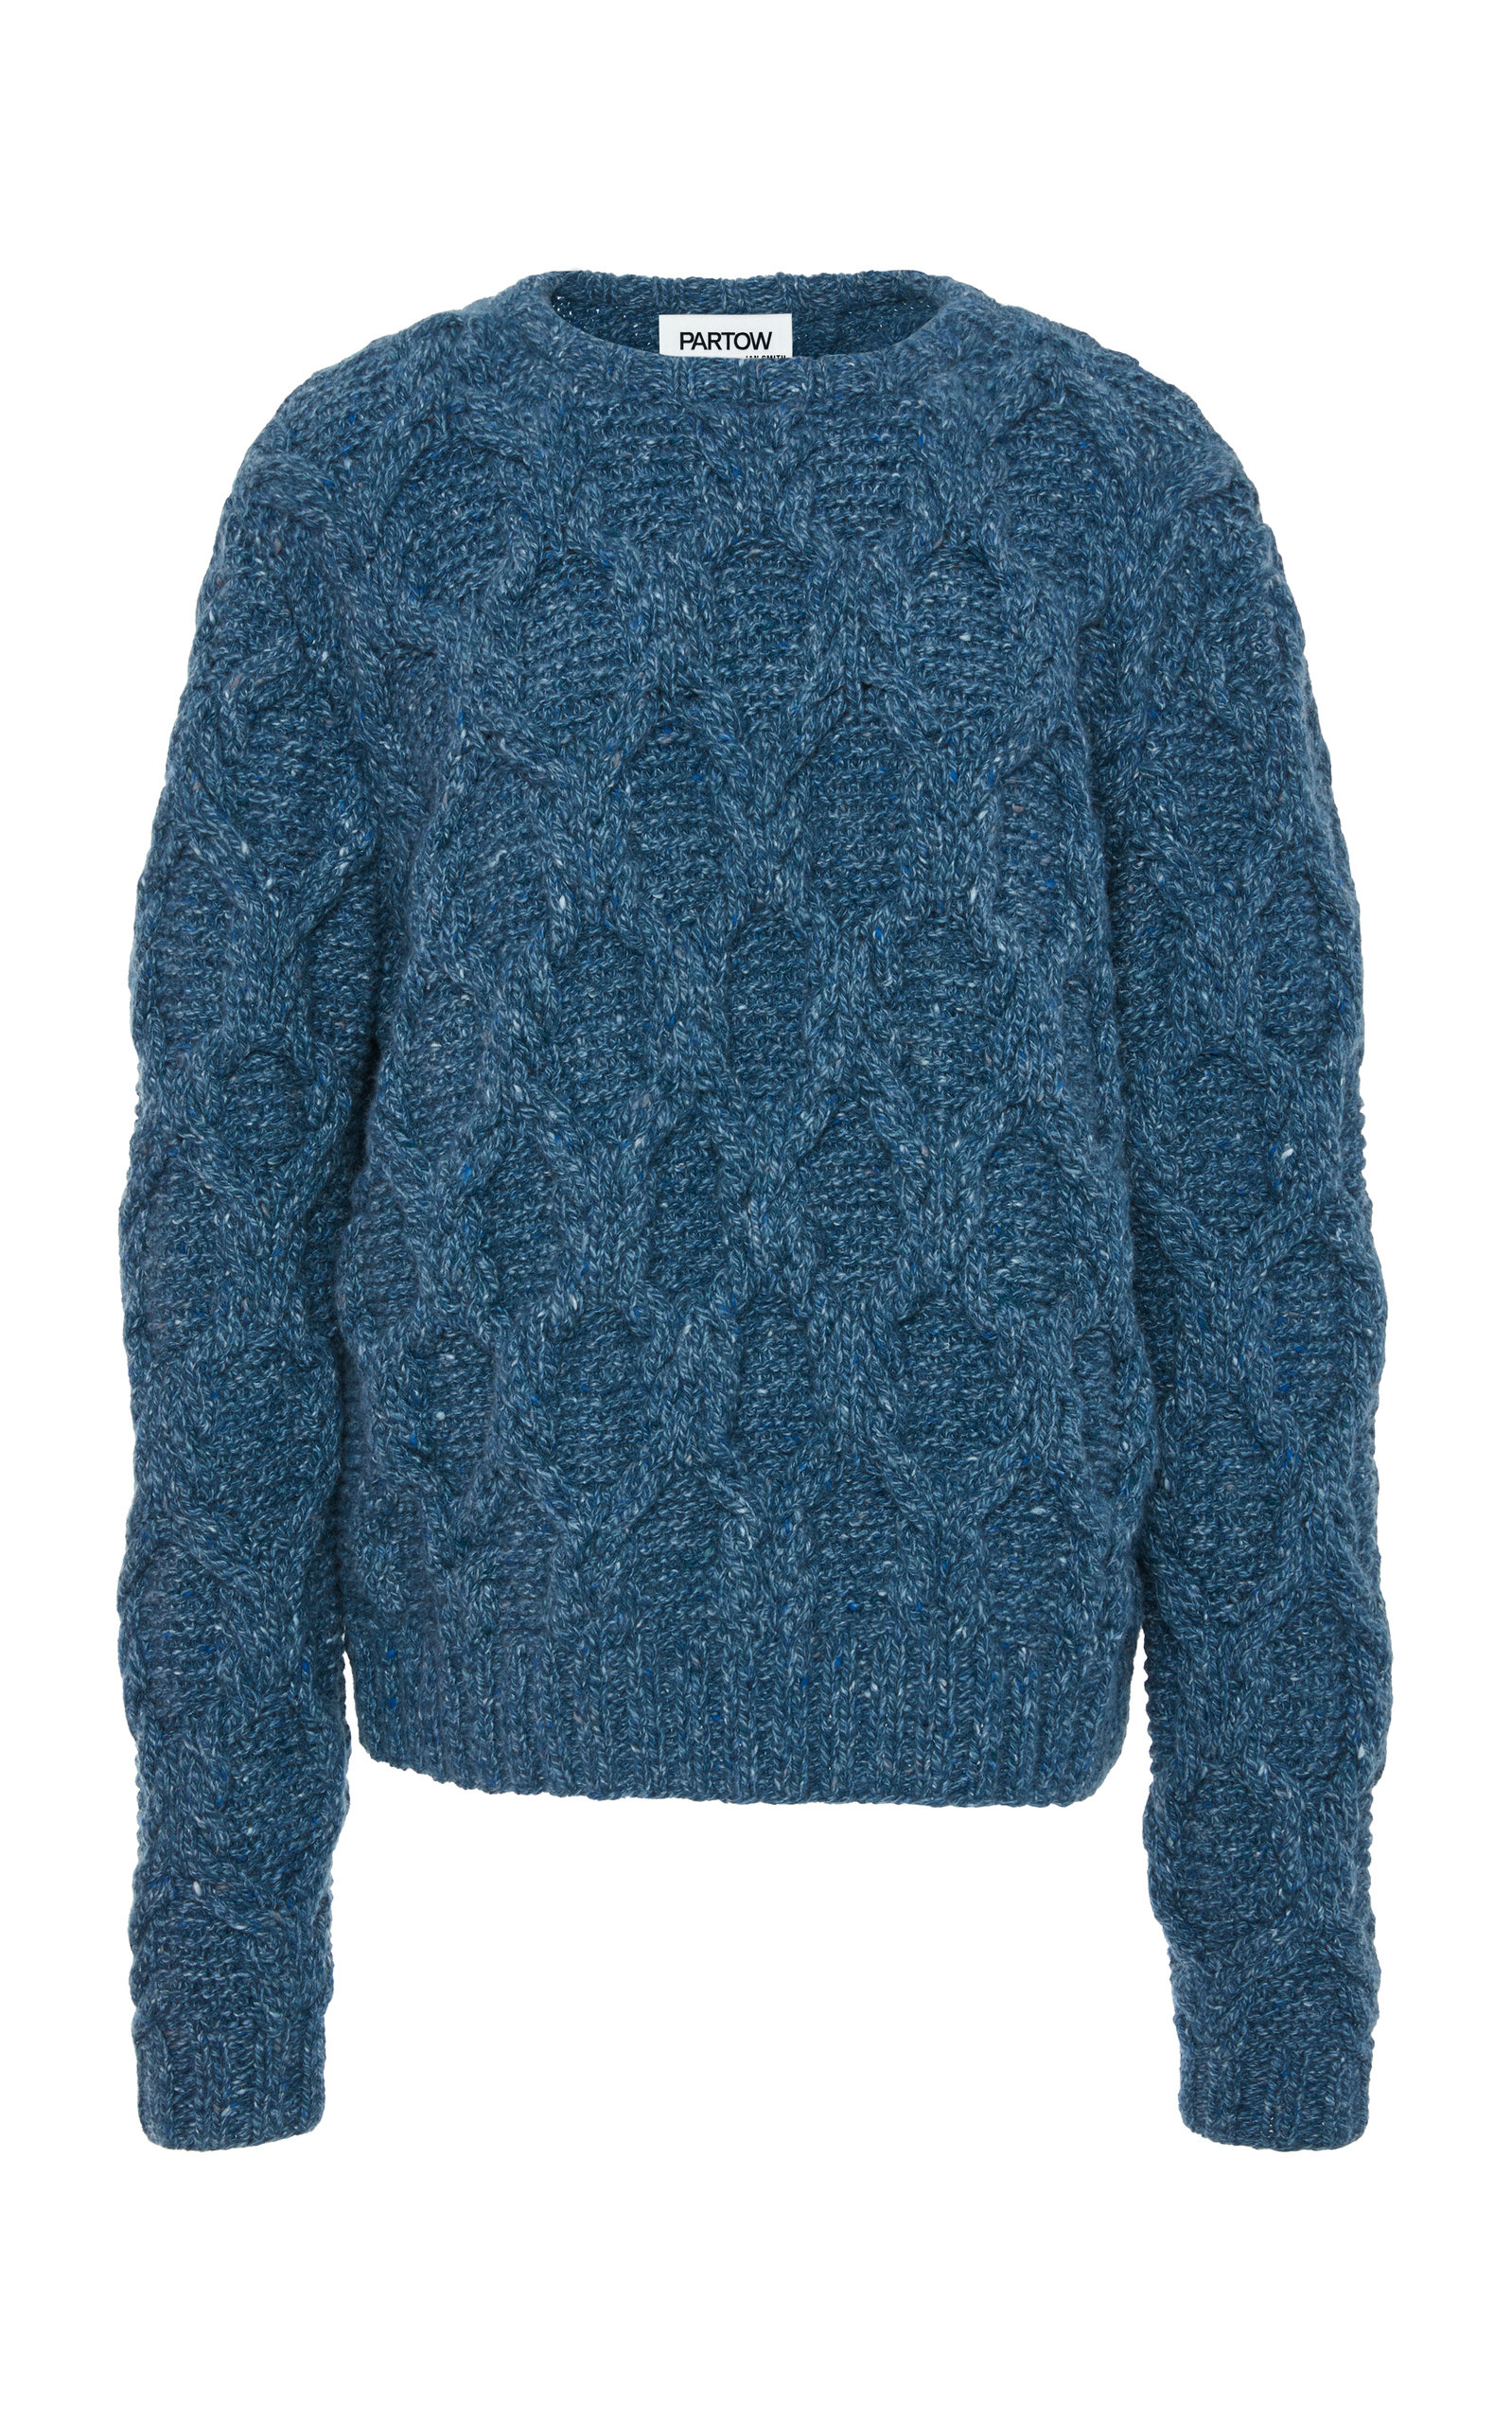 M'ONOGRAMMABLE CARSON SWEATER